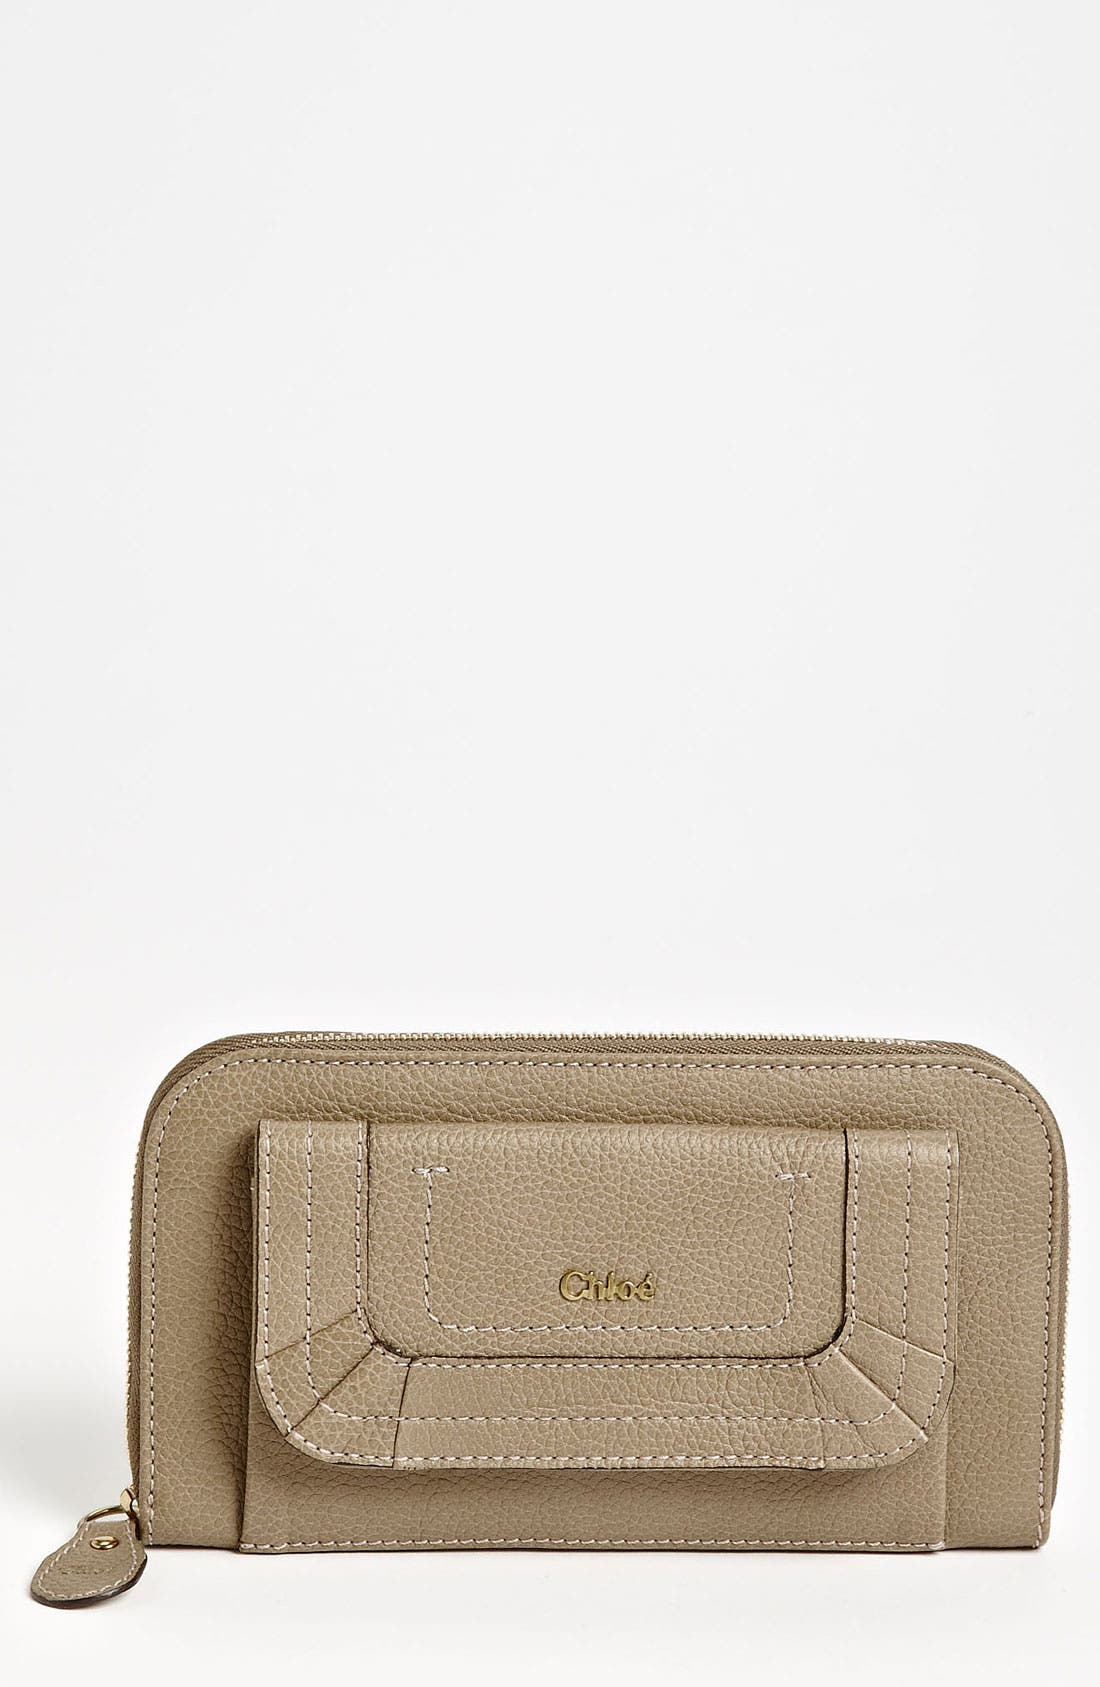 Alternate Image 1 Selected - Chloé 'Paraty' Leather Wallet